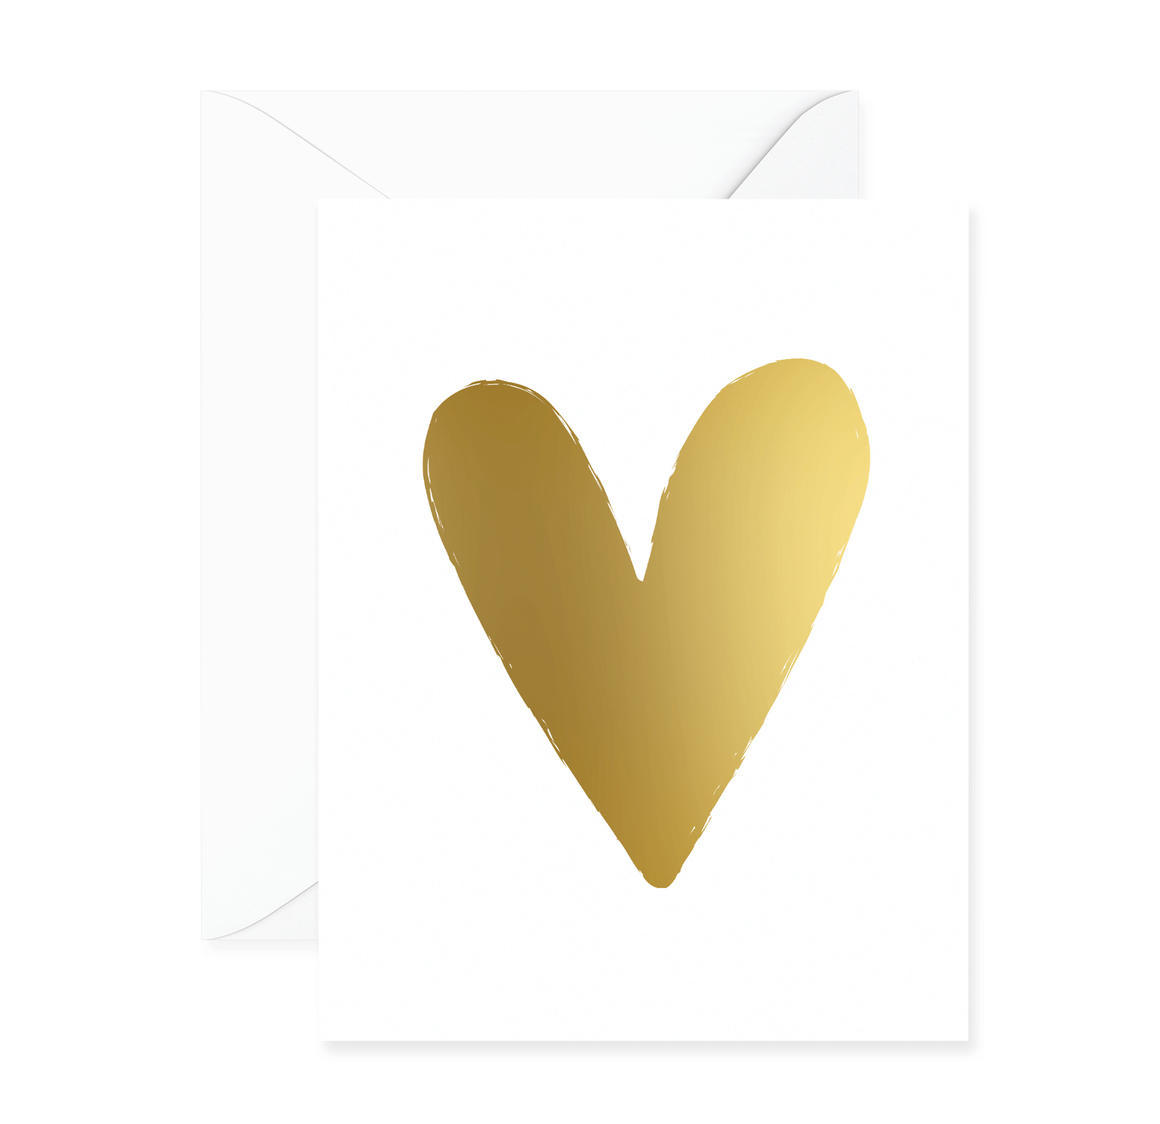 Heart Gold Foil Greeting Card | Trada Marketplace